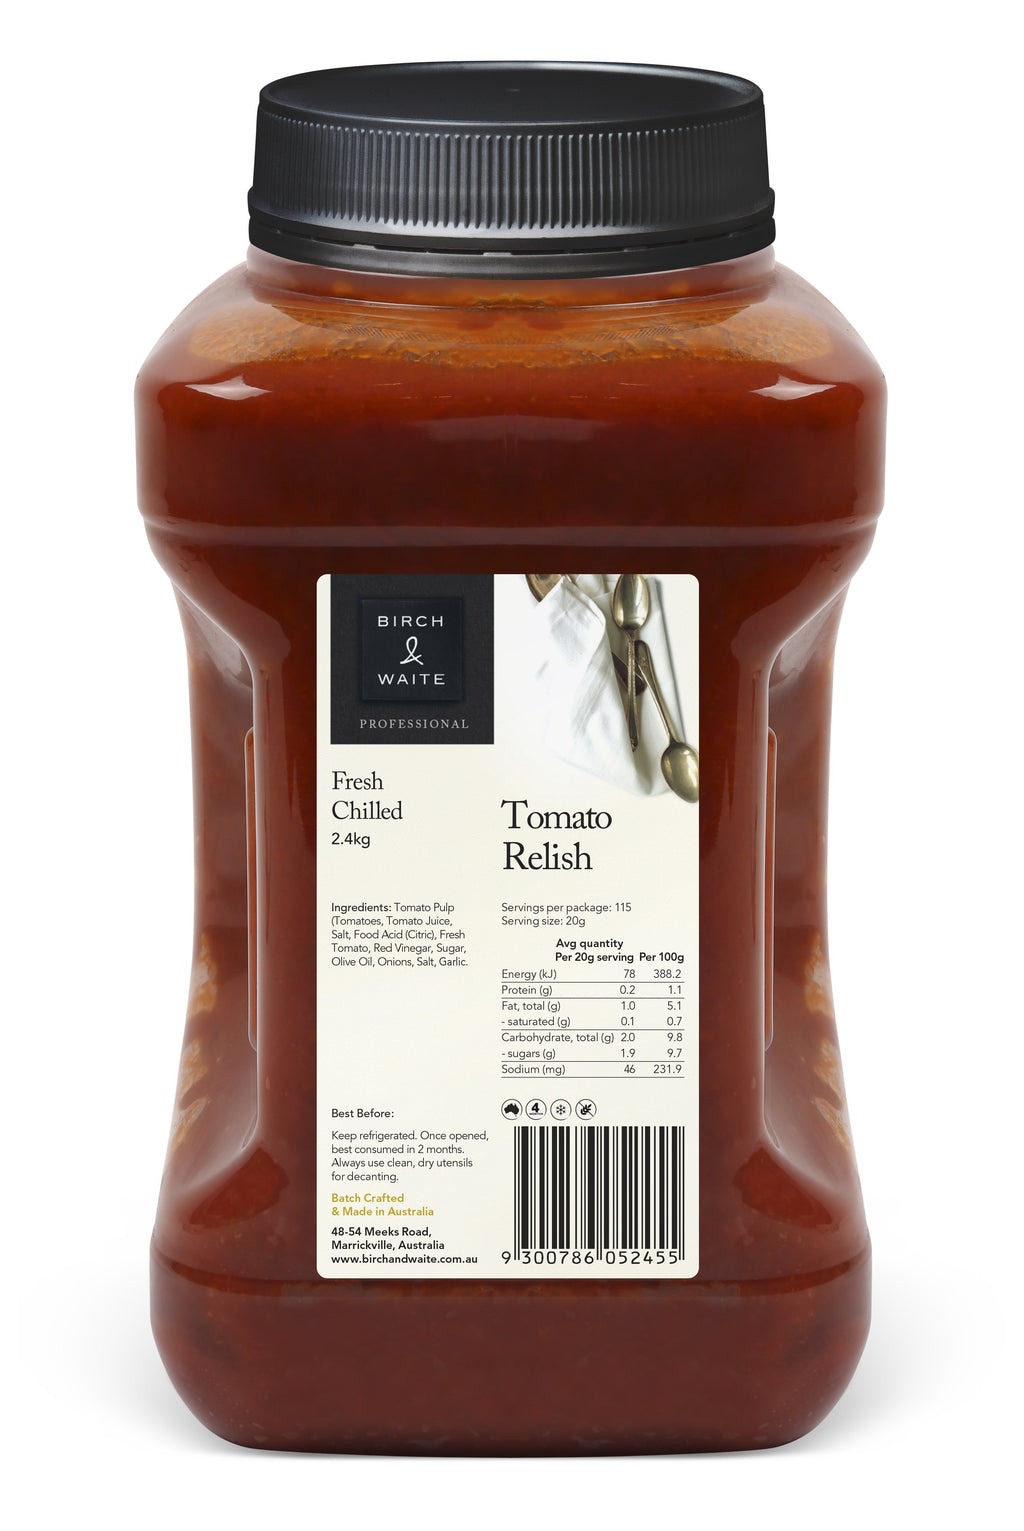 Tomato Relish 2.4kg Tub Birch & Waite